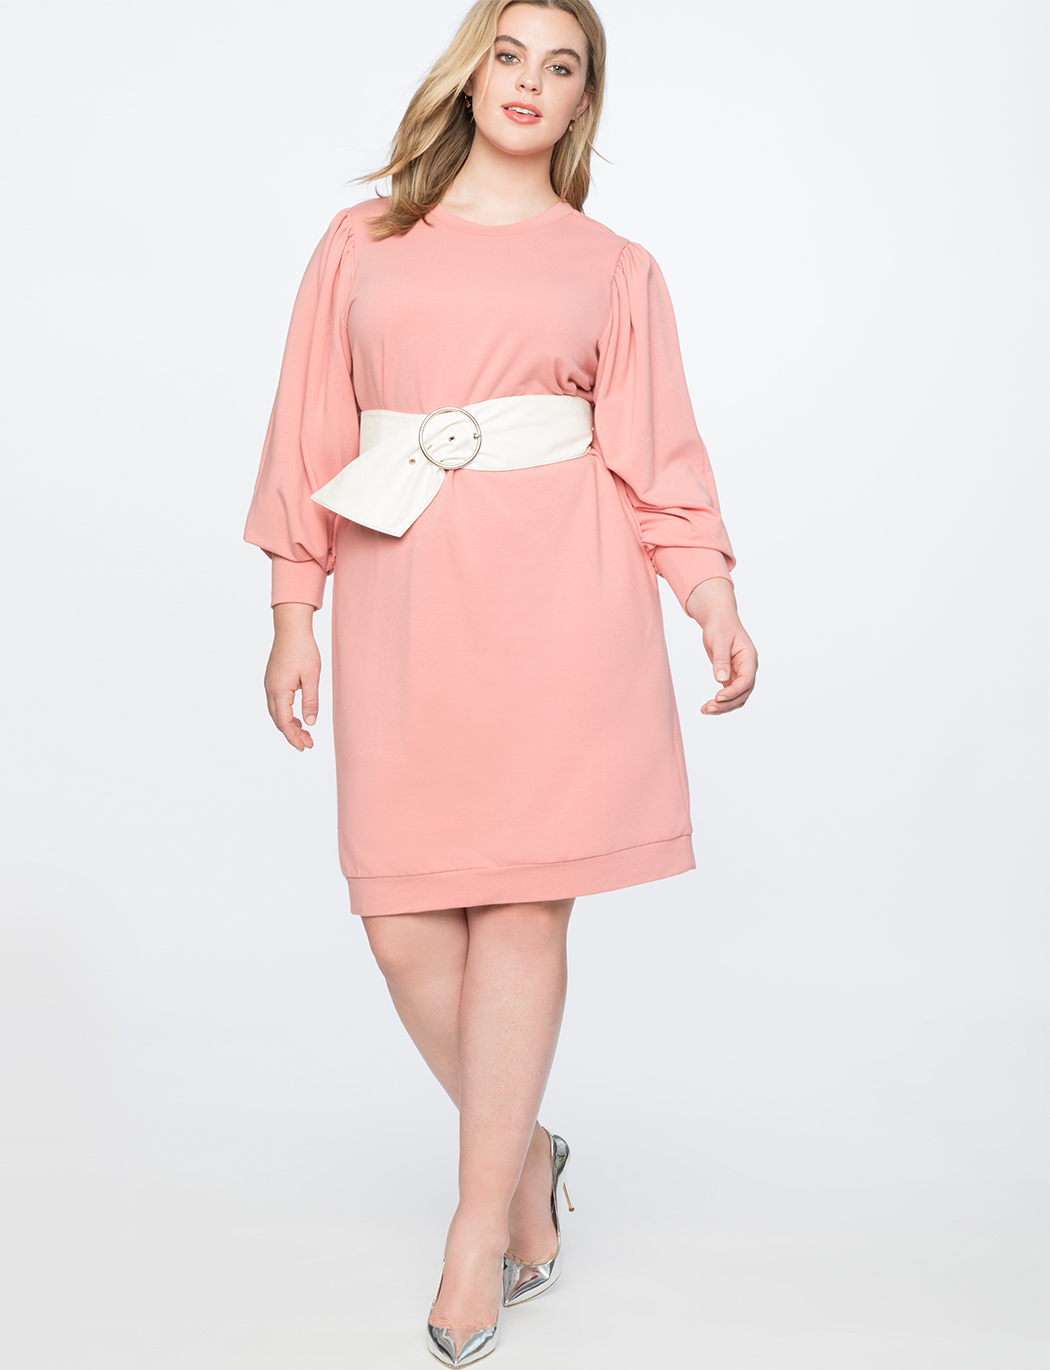 6cce1e5fa2ed Dramatic Puff Sleeve Sweatshirt Dress | Women's Plus Size Dresses ...